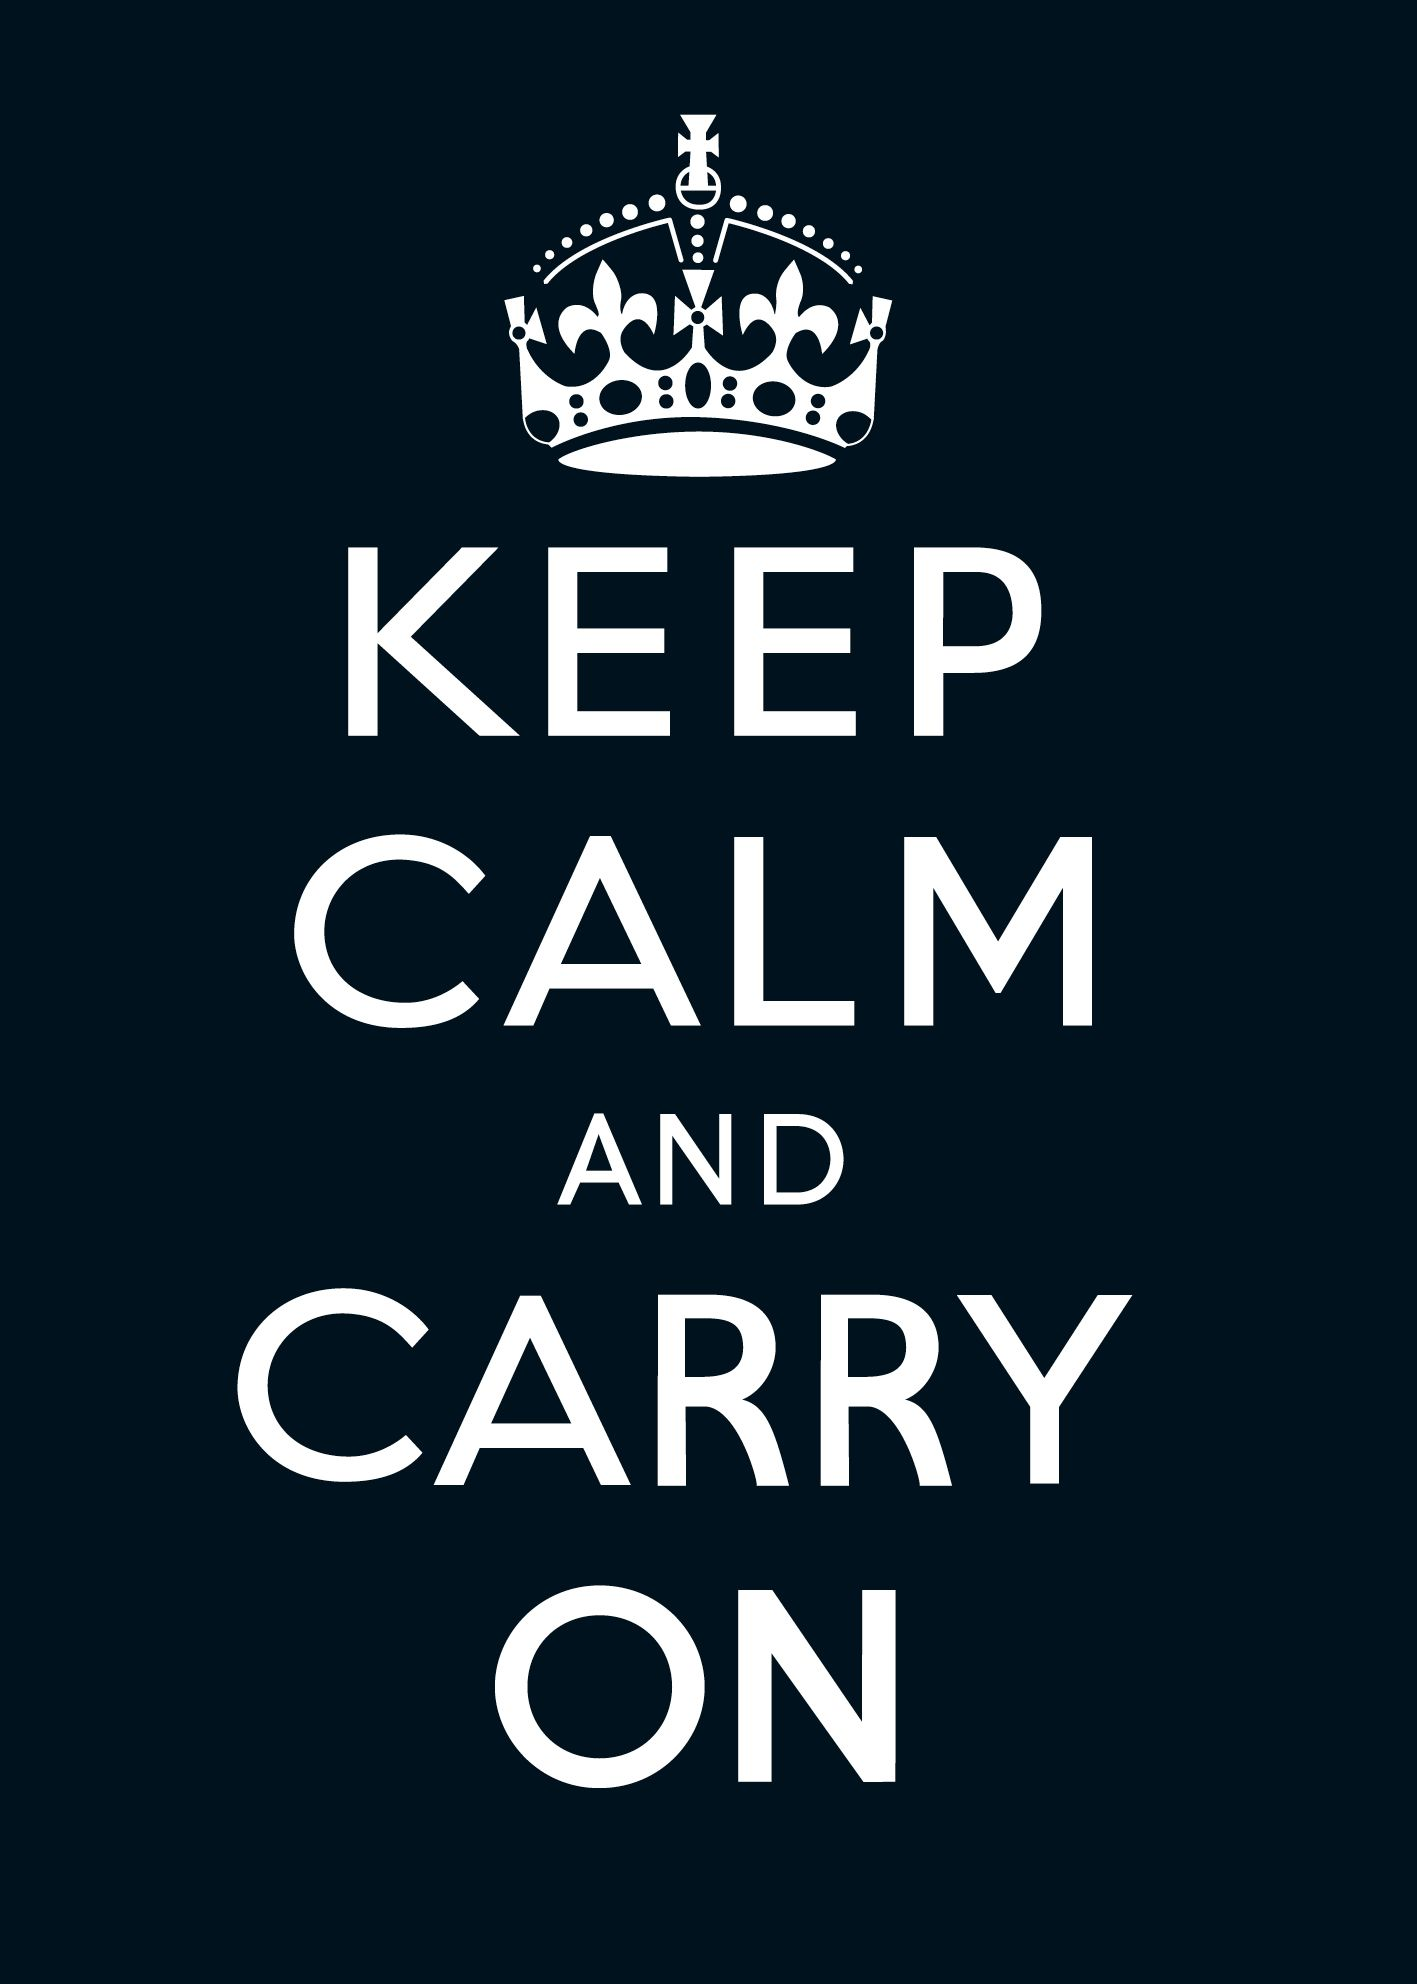 how to keep calm during a When a serious situation arises at work, your first instinct may be to panic  unfortunately, severe anxiety and stress can result in a complete.